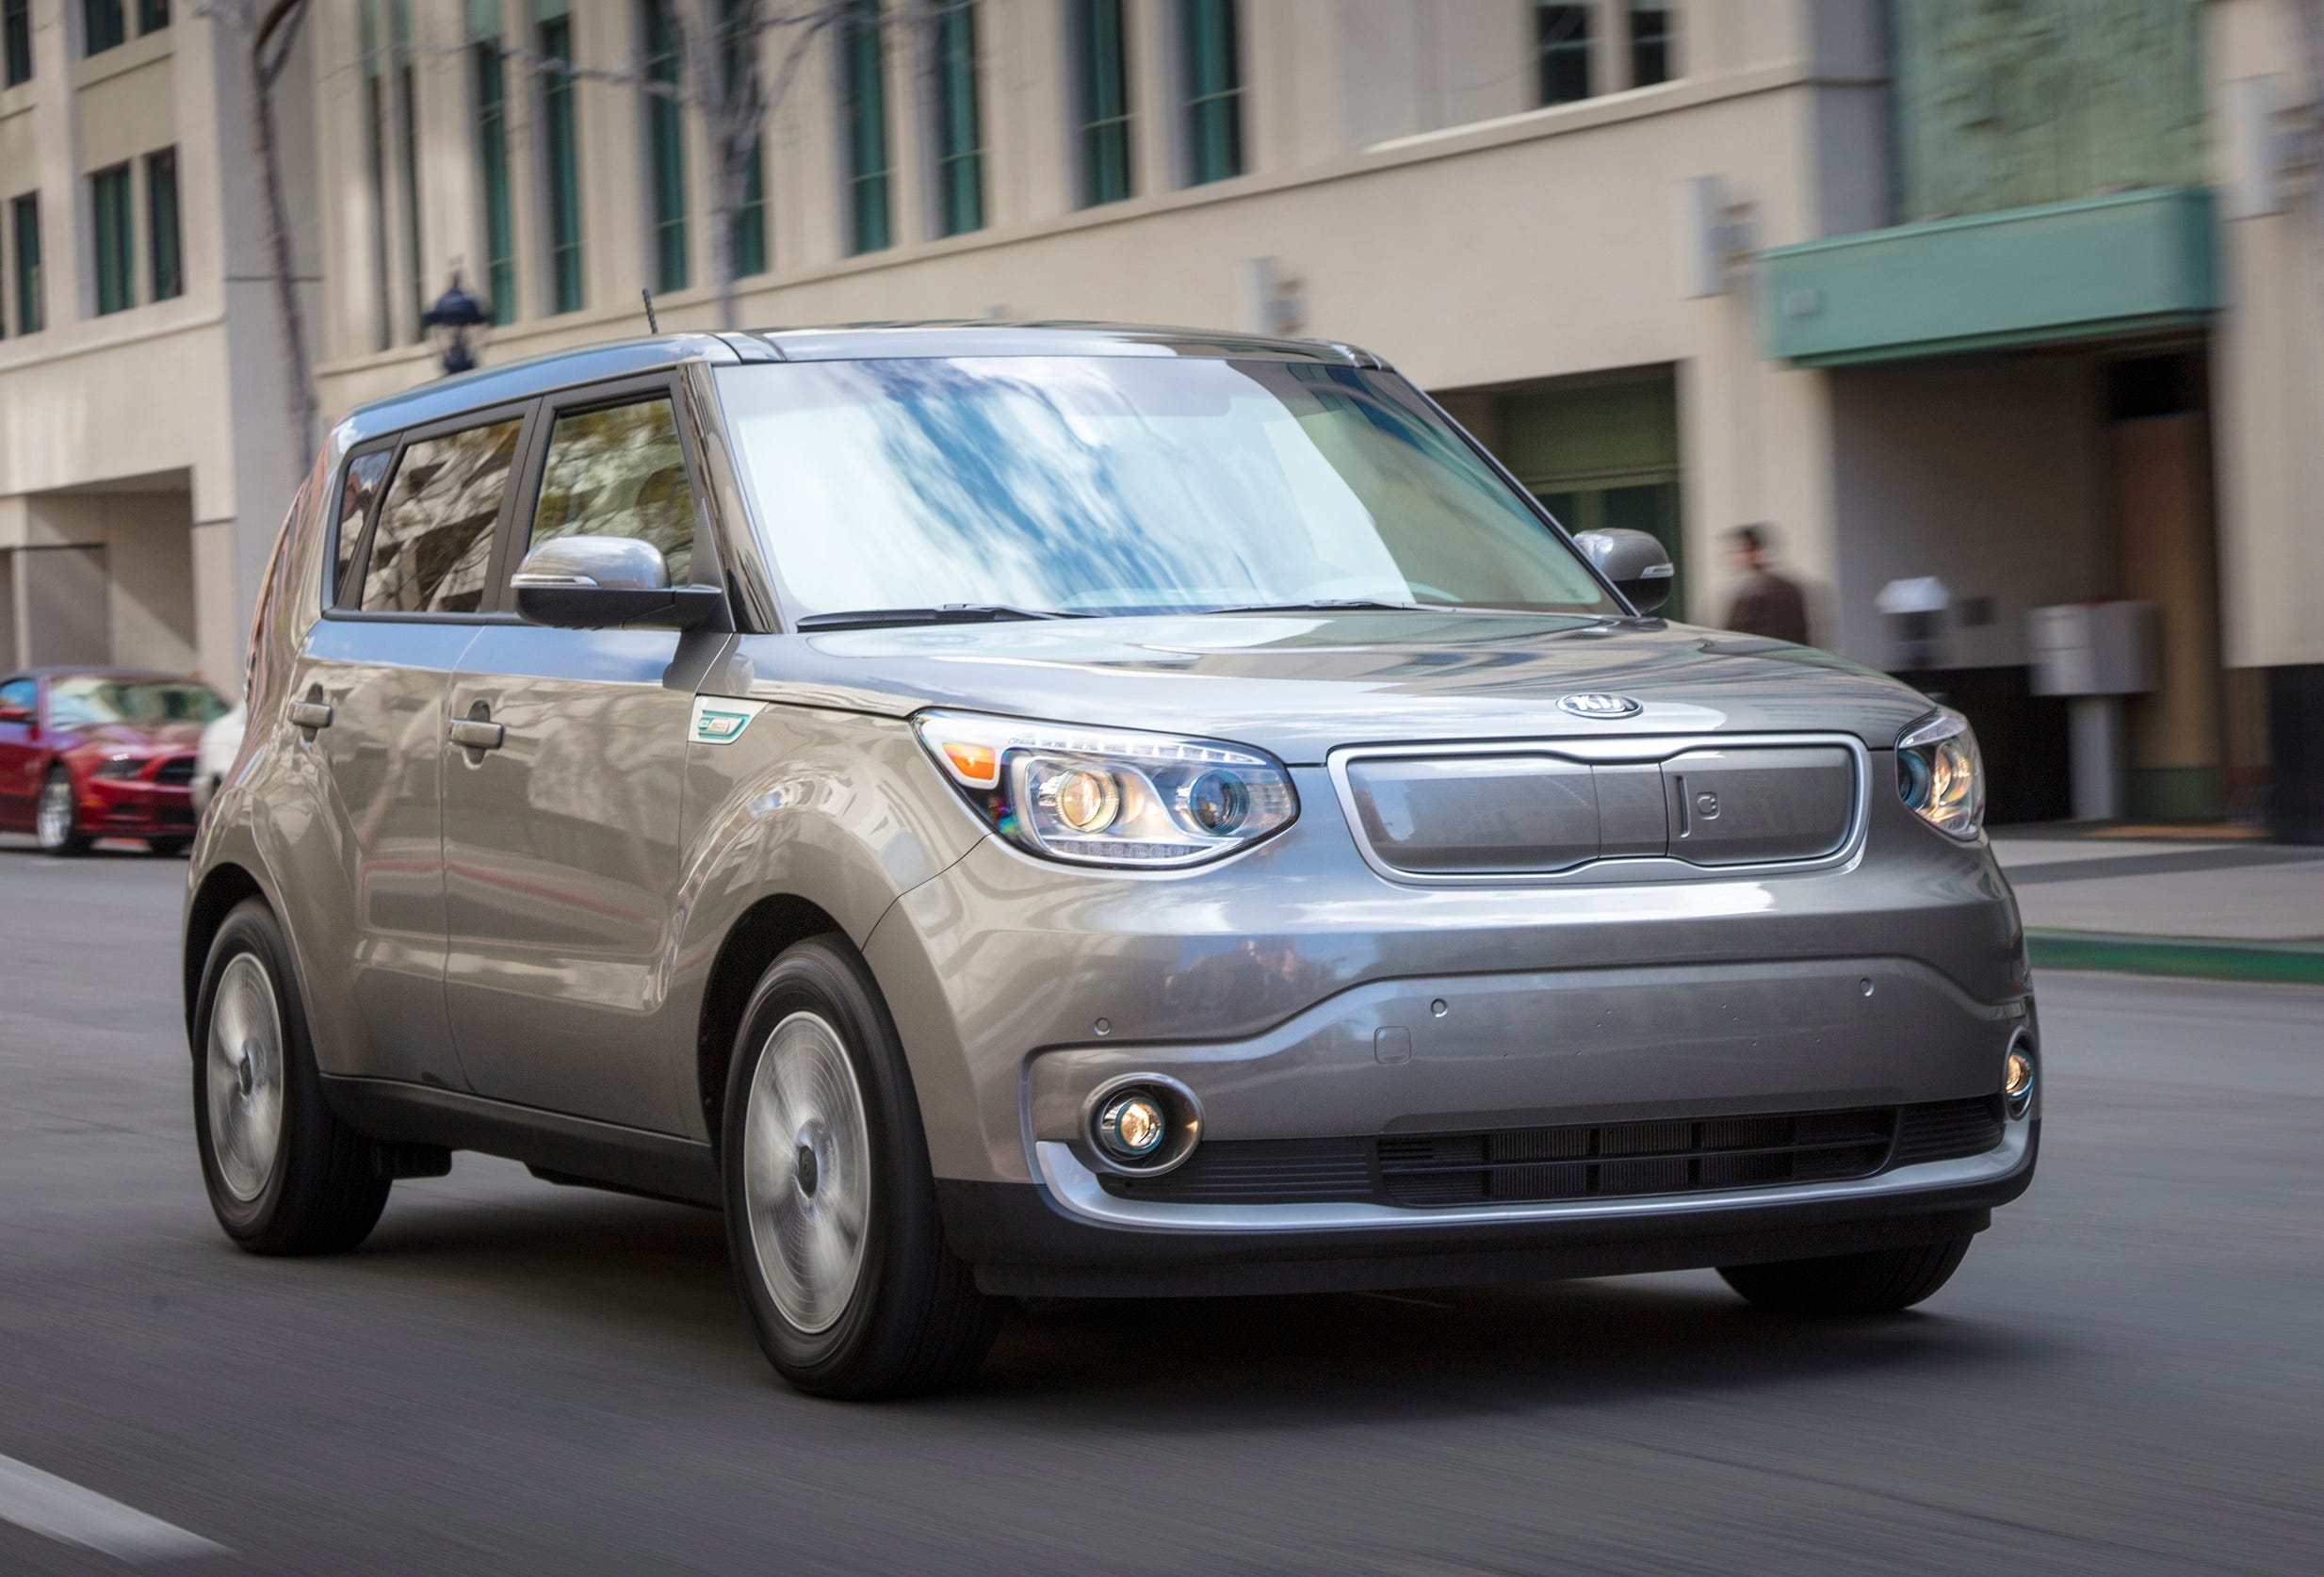 This undated photo provided by Kia shows the 2018 Kia Soul EV, an electric car that gets 111 miles of range on a charge. (Kia Motors America via AP)